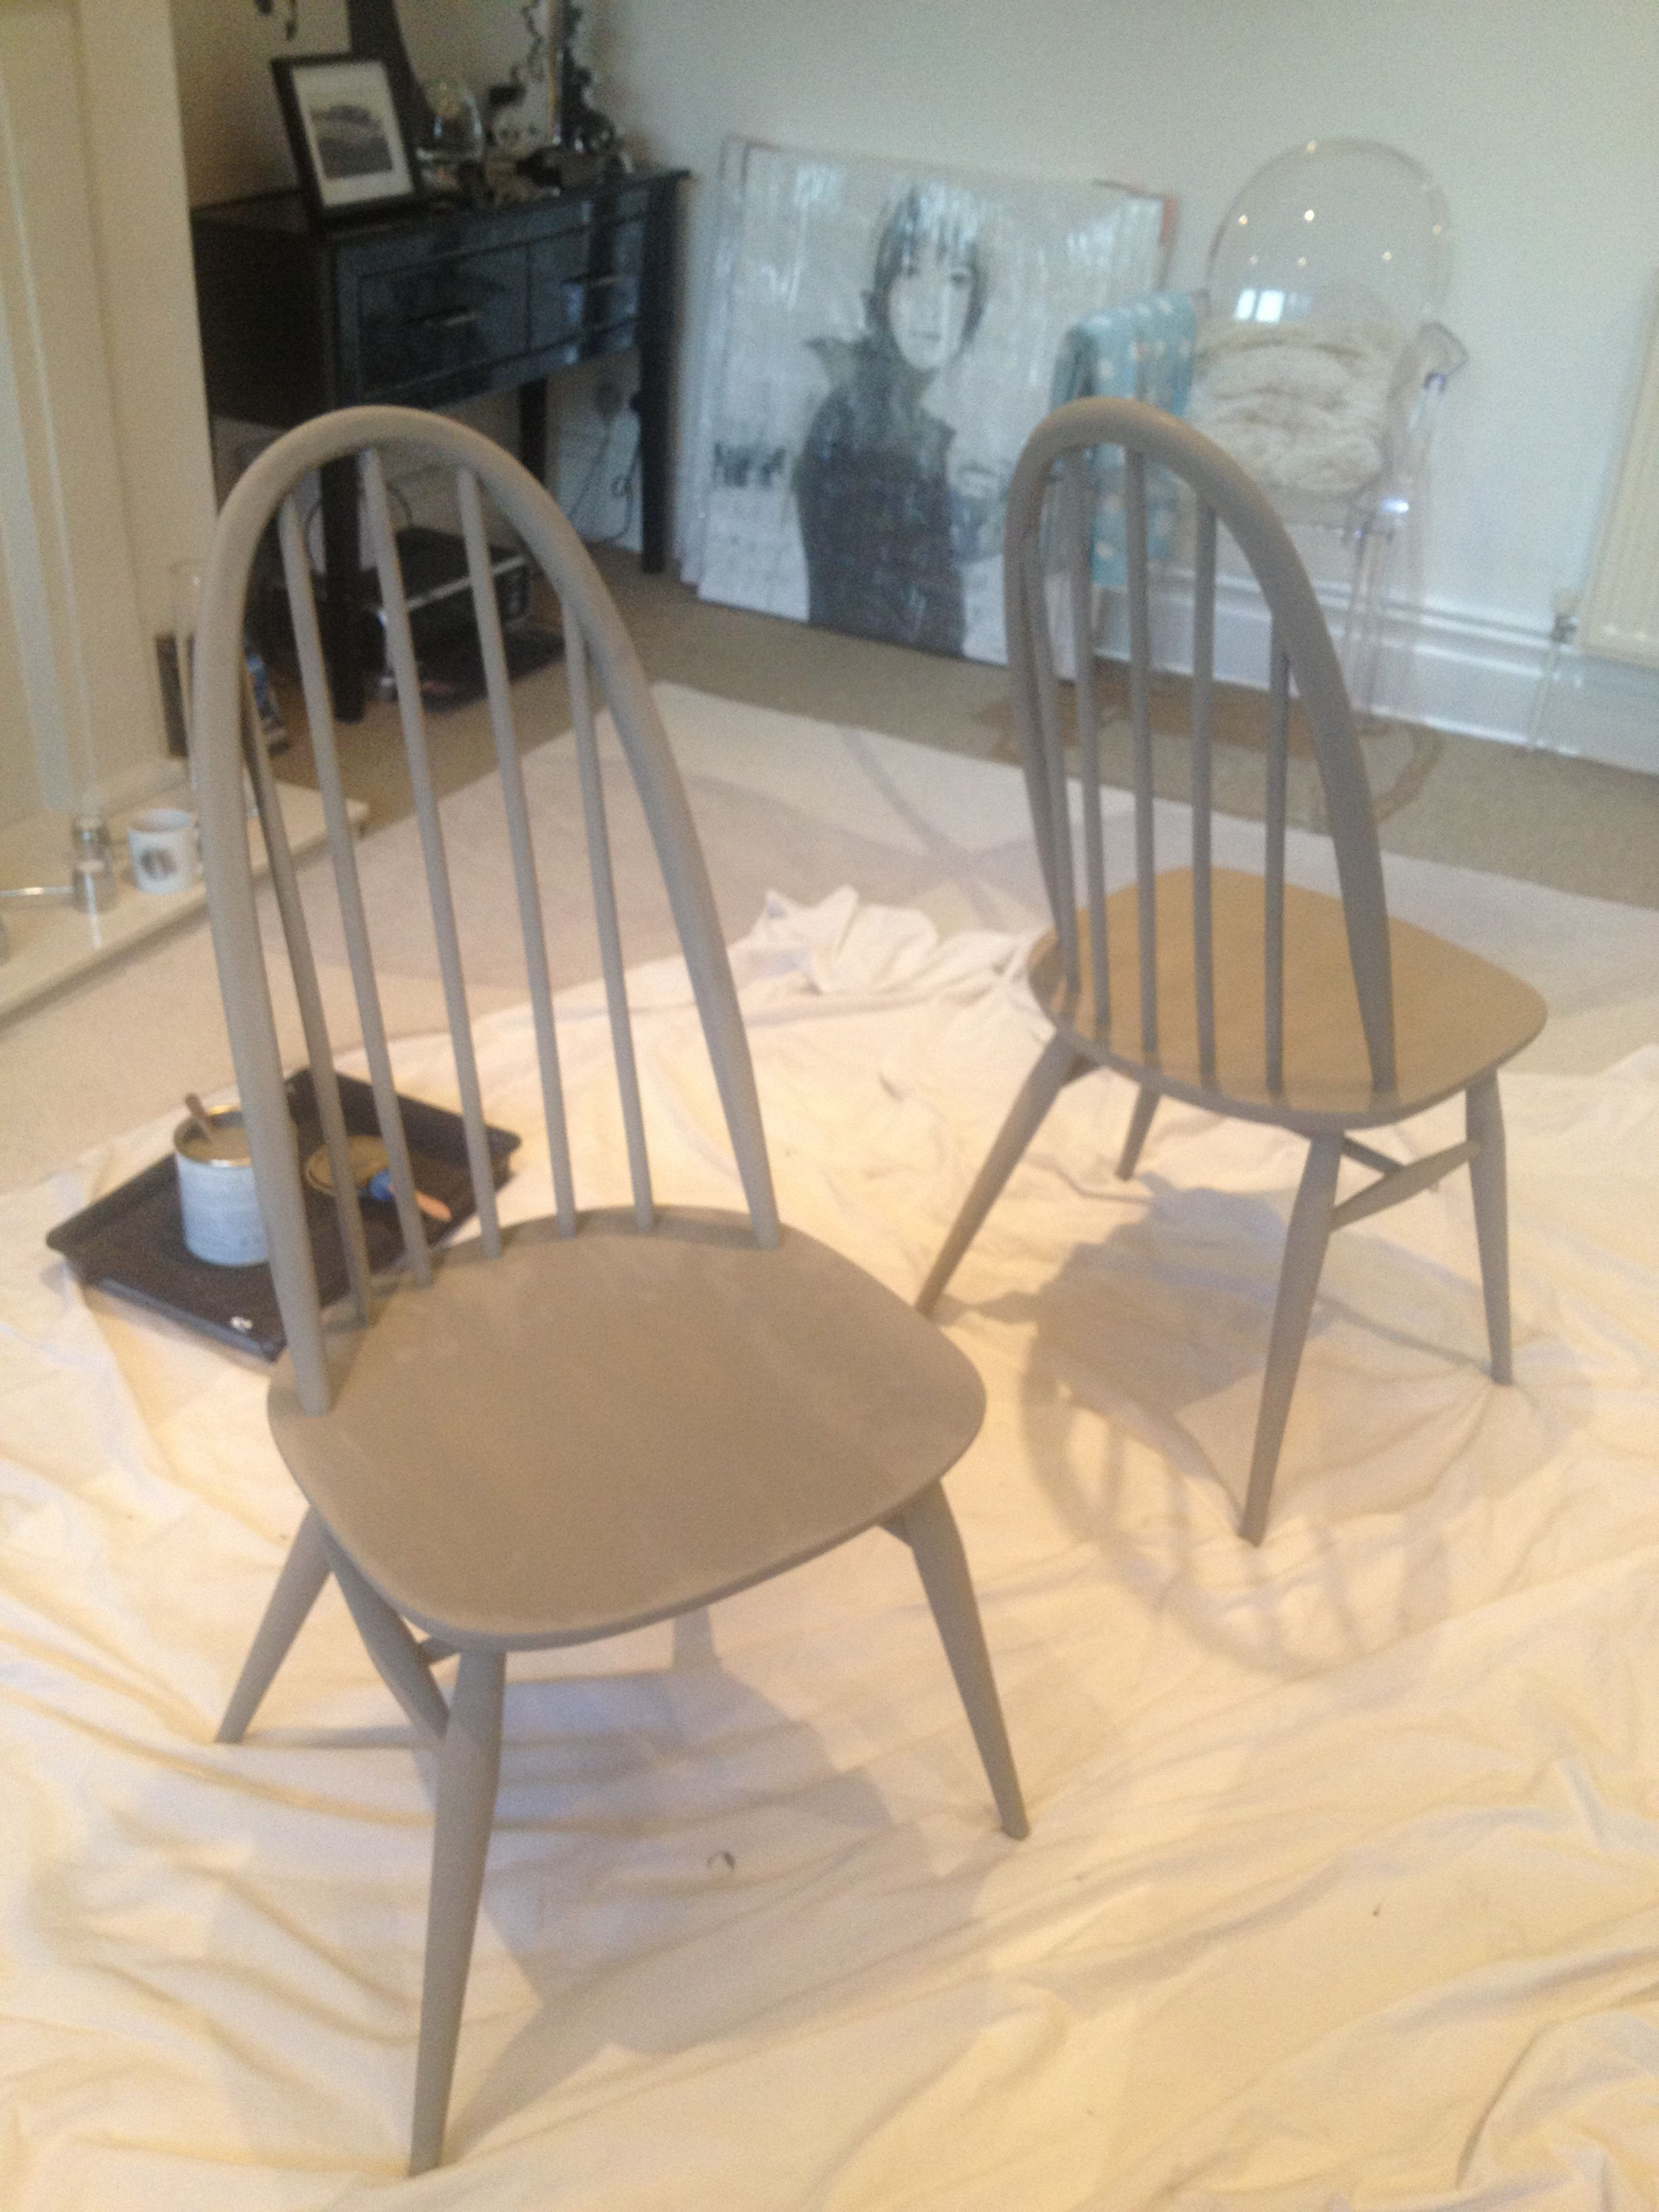 ercol chairs ive painted Ercol chair, Dining chairs, Chair